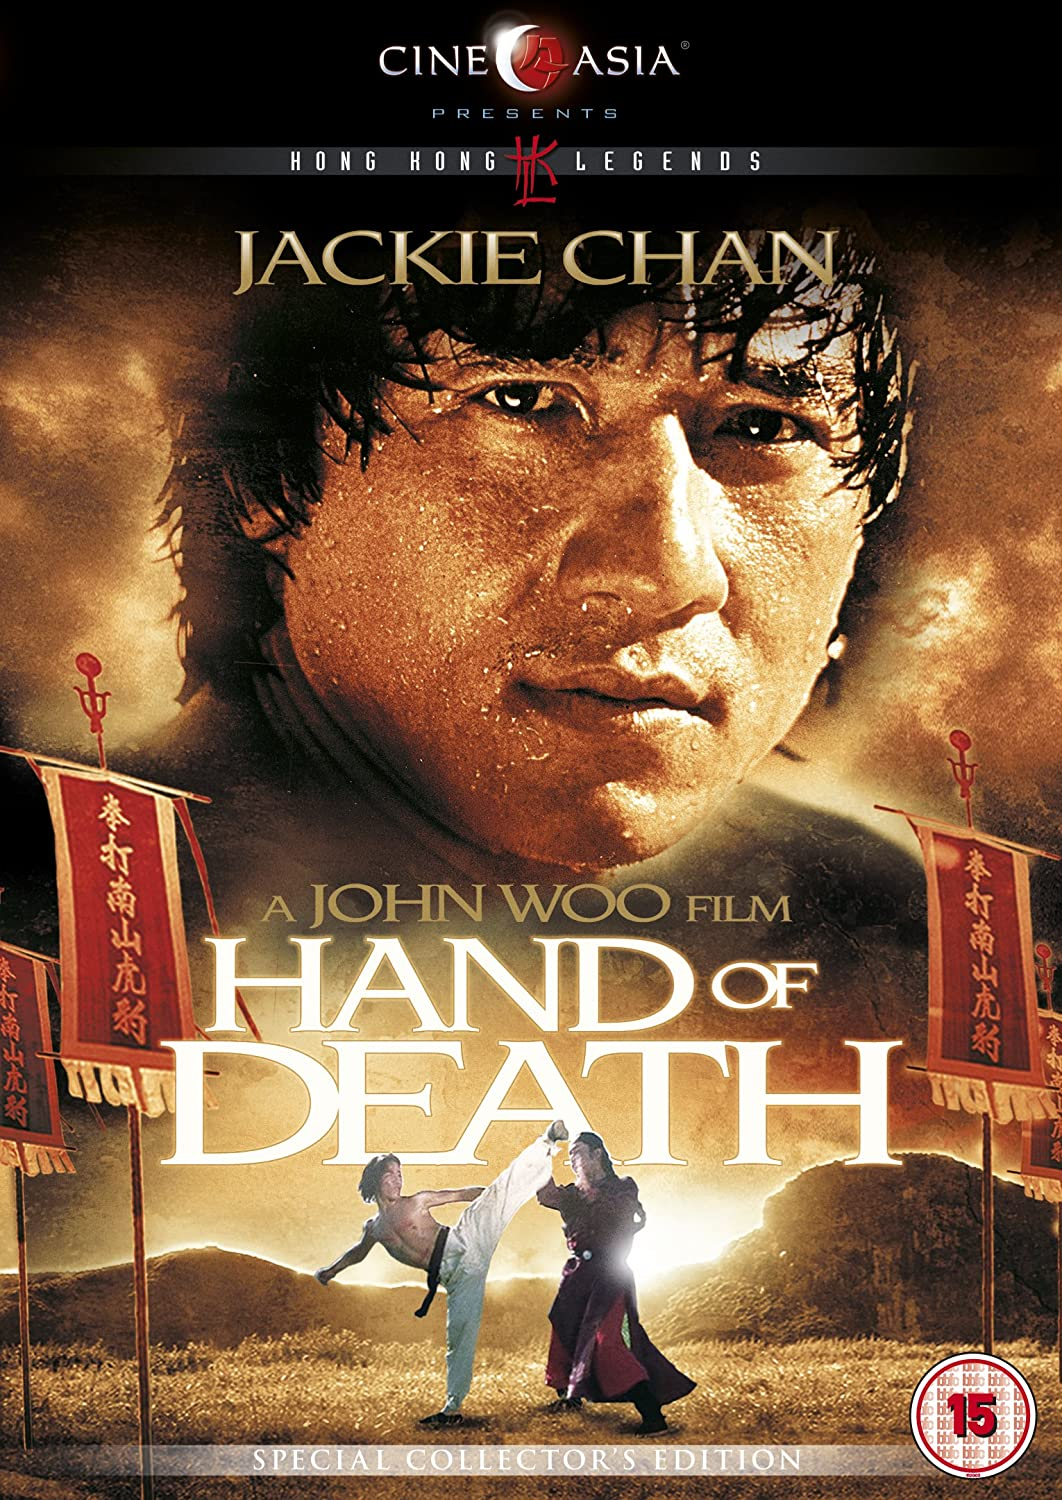 Jackie Chan in the Hand Of Death DVD